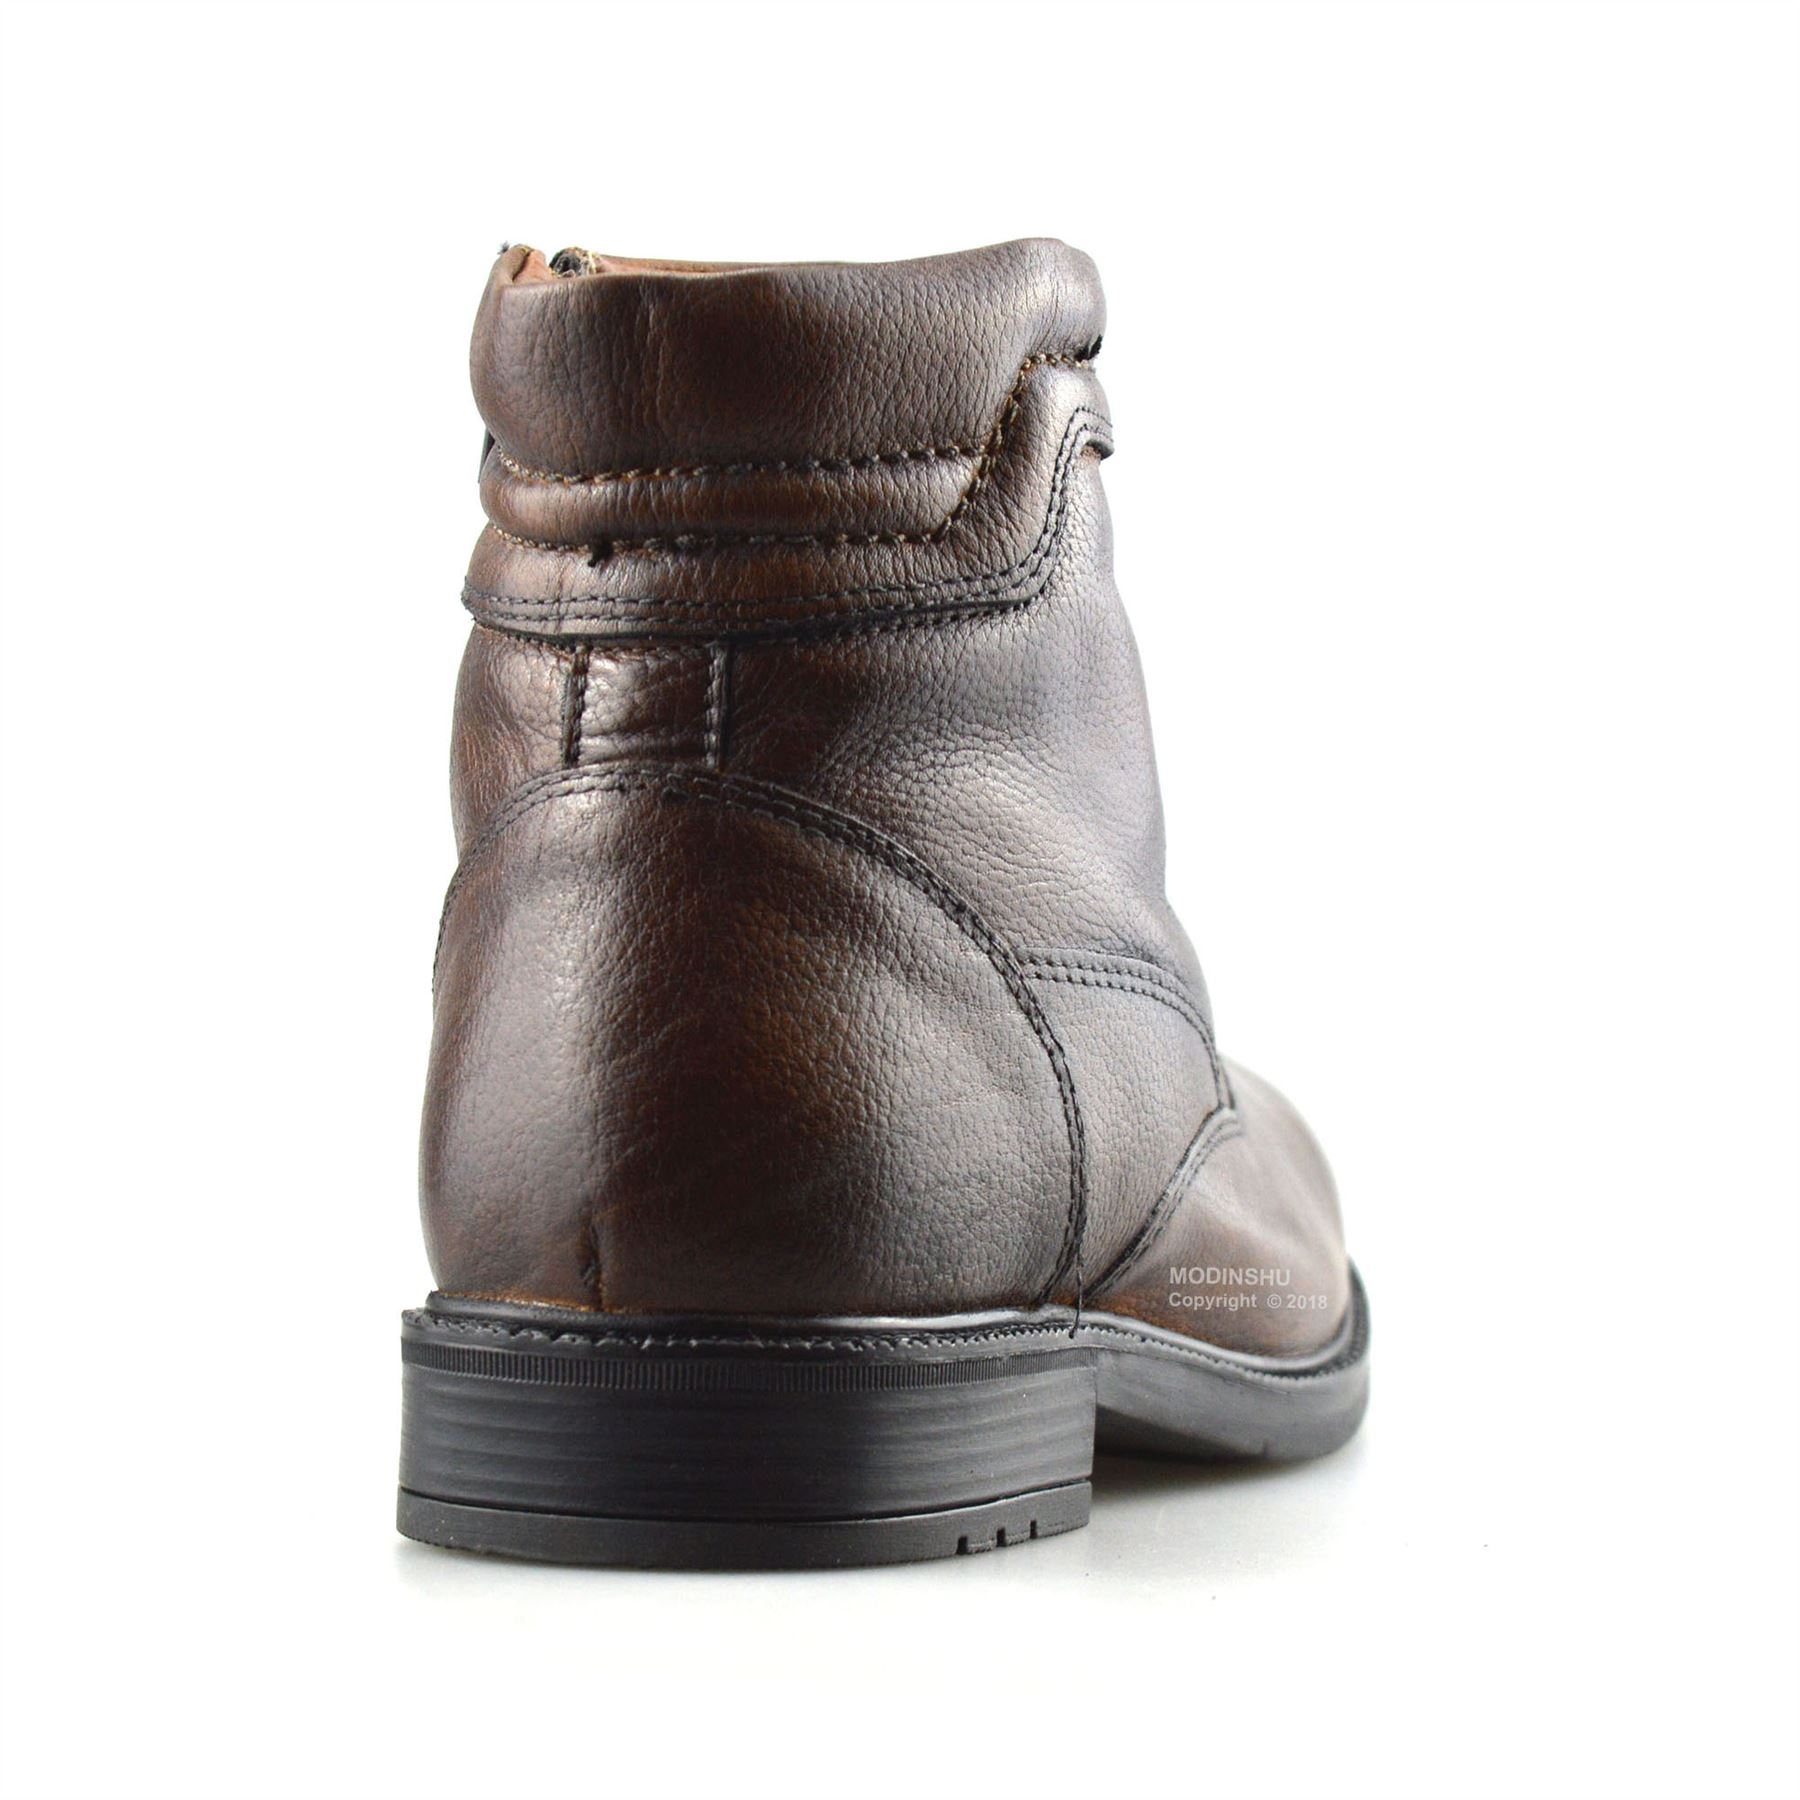 Mens Leather Zip Up Casual Walking Warm Fur Ankle Chelsea Biker Boots Shoes Size